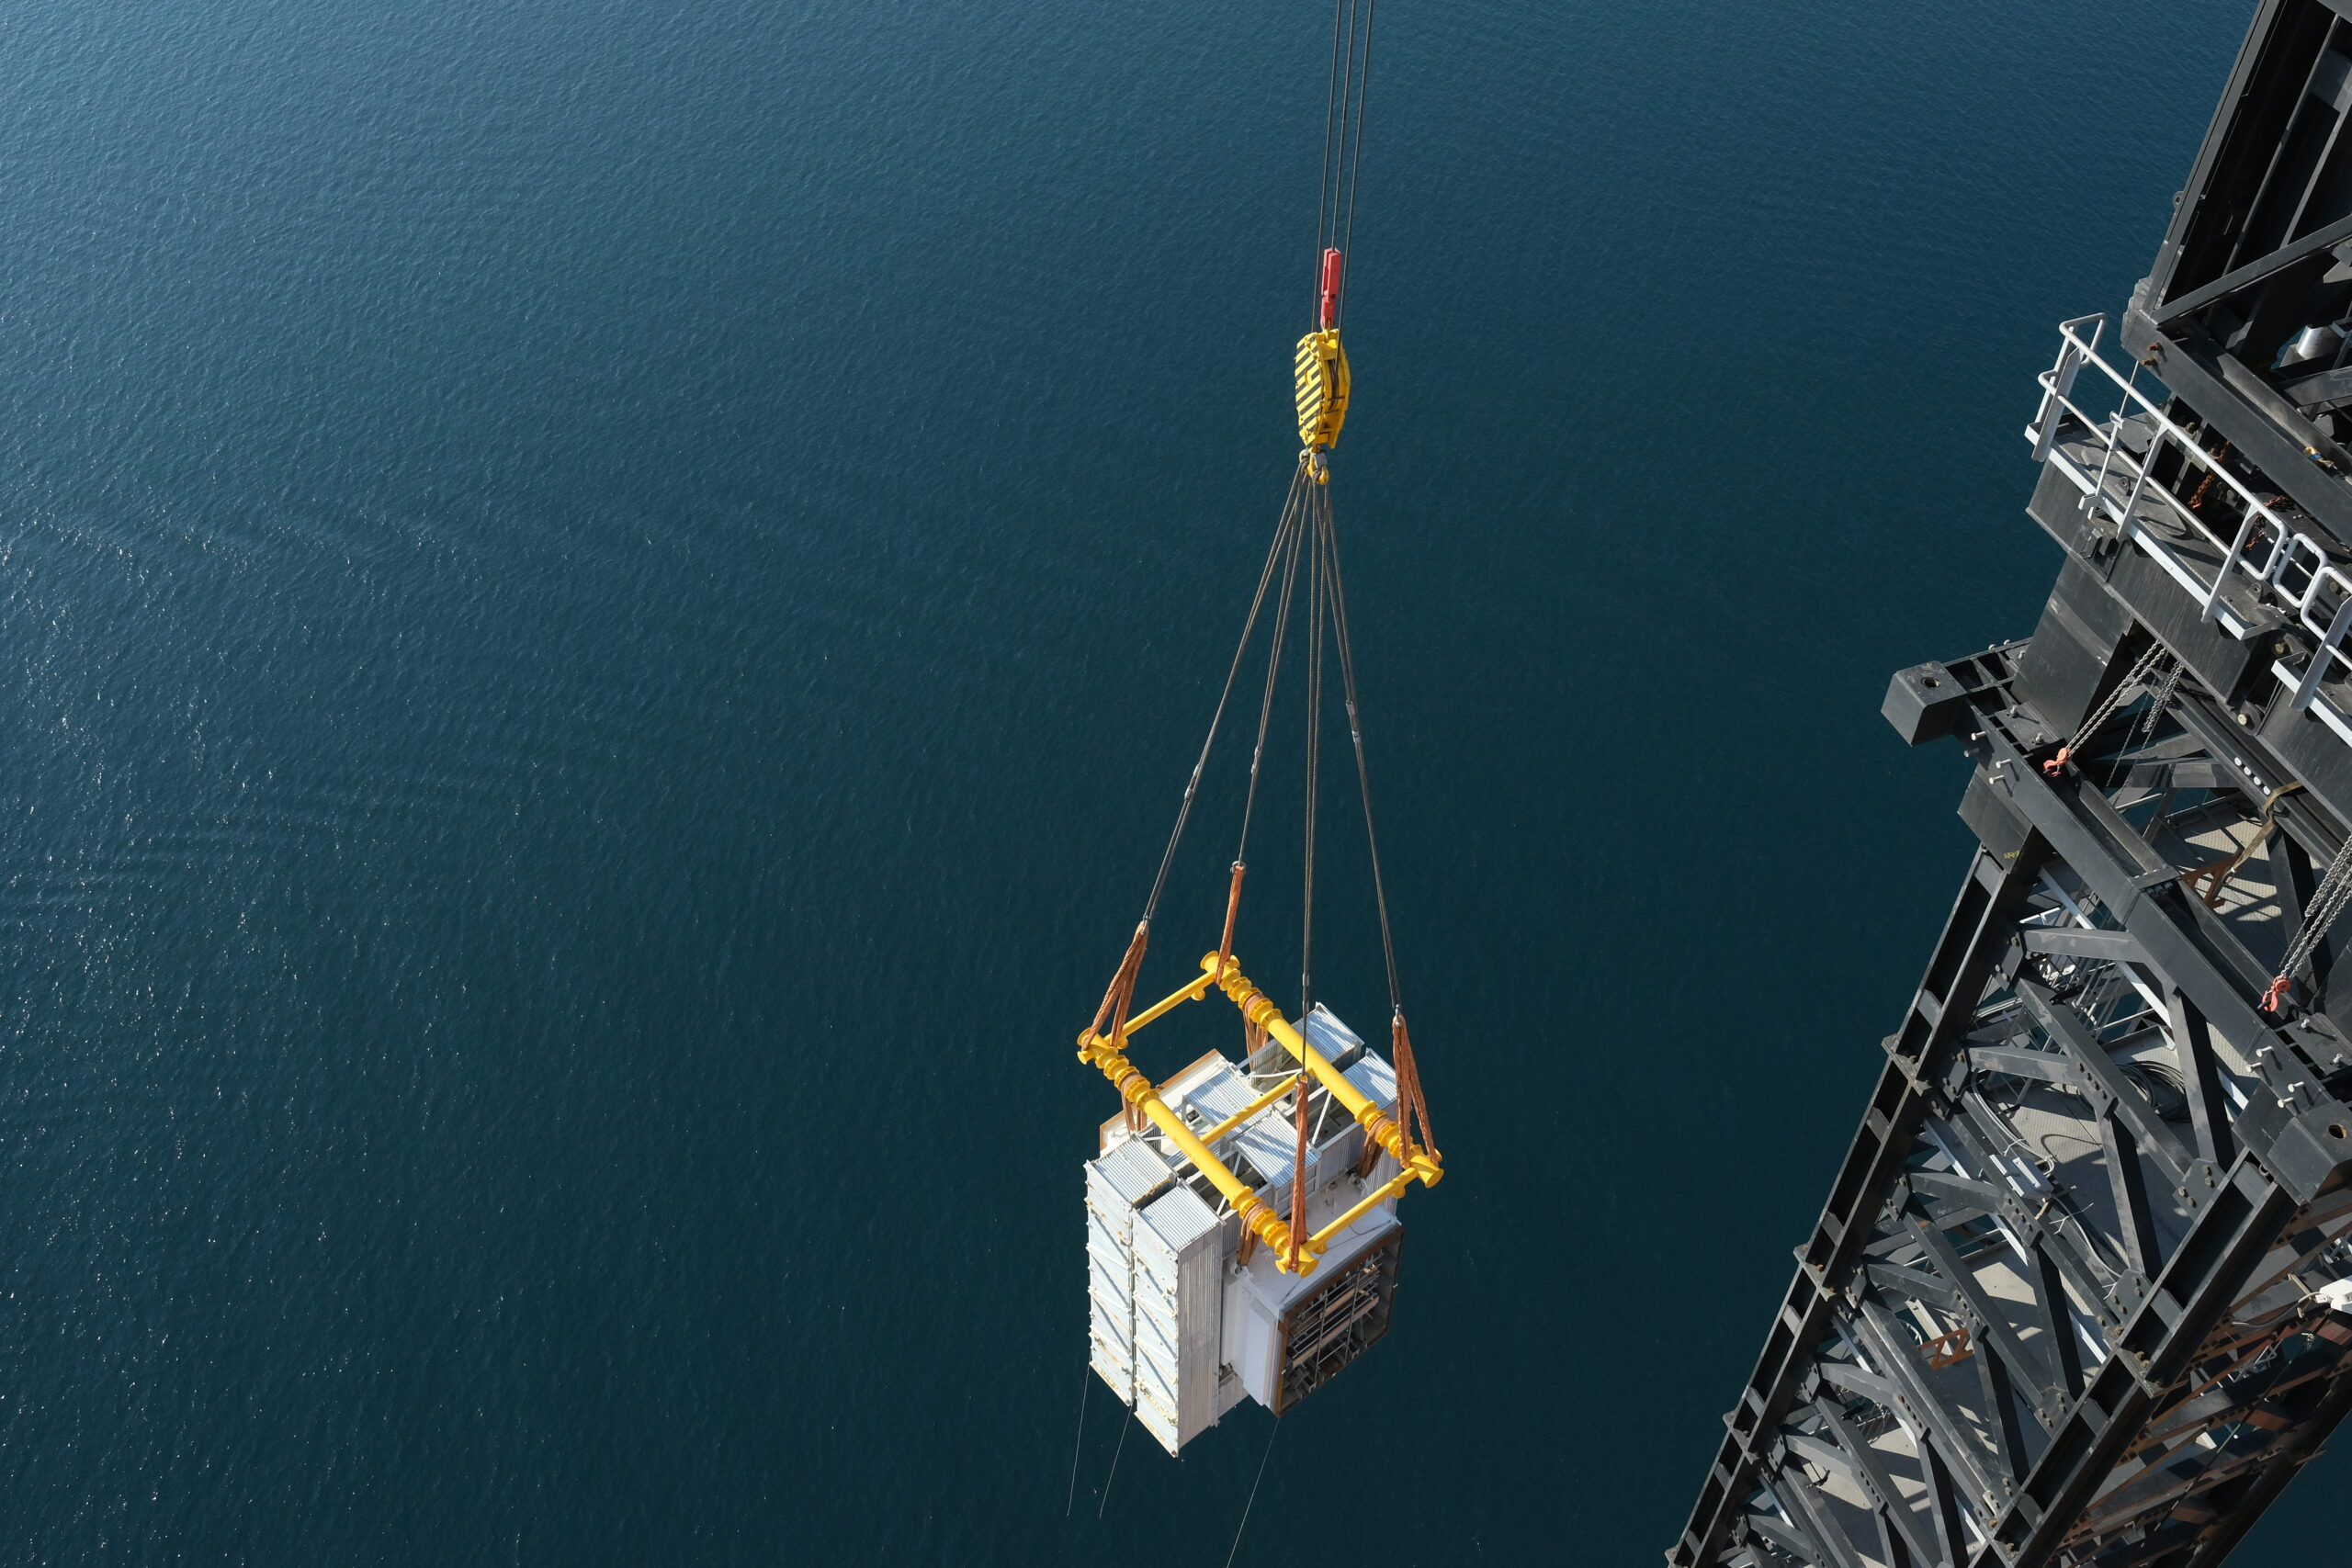 Marrs-innovative-approach-allows-heavy-components-weighing-up-to155t-to-be-lifted-to-318m-in-a-single-lift